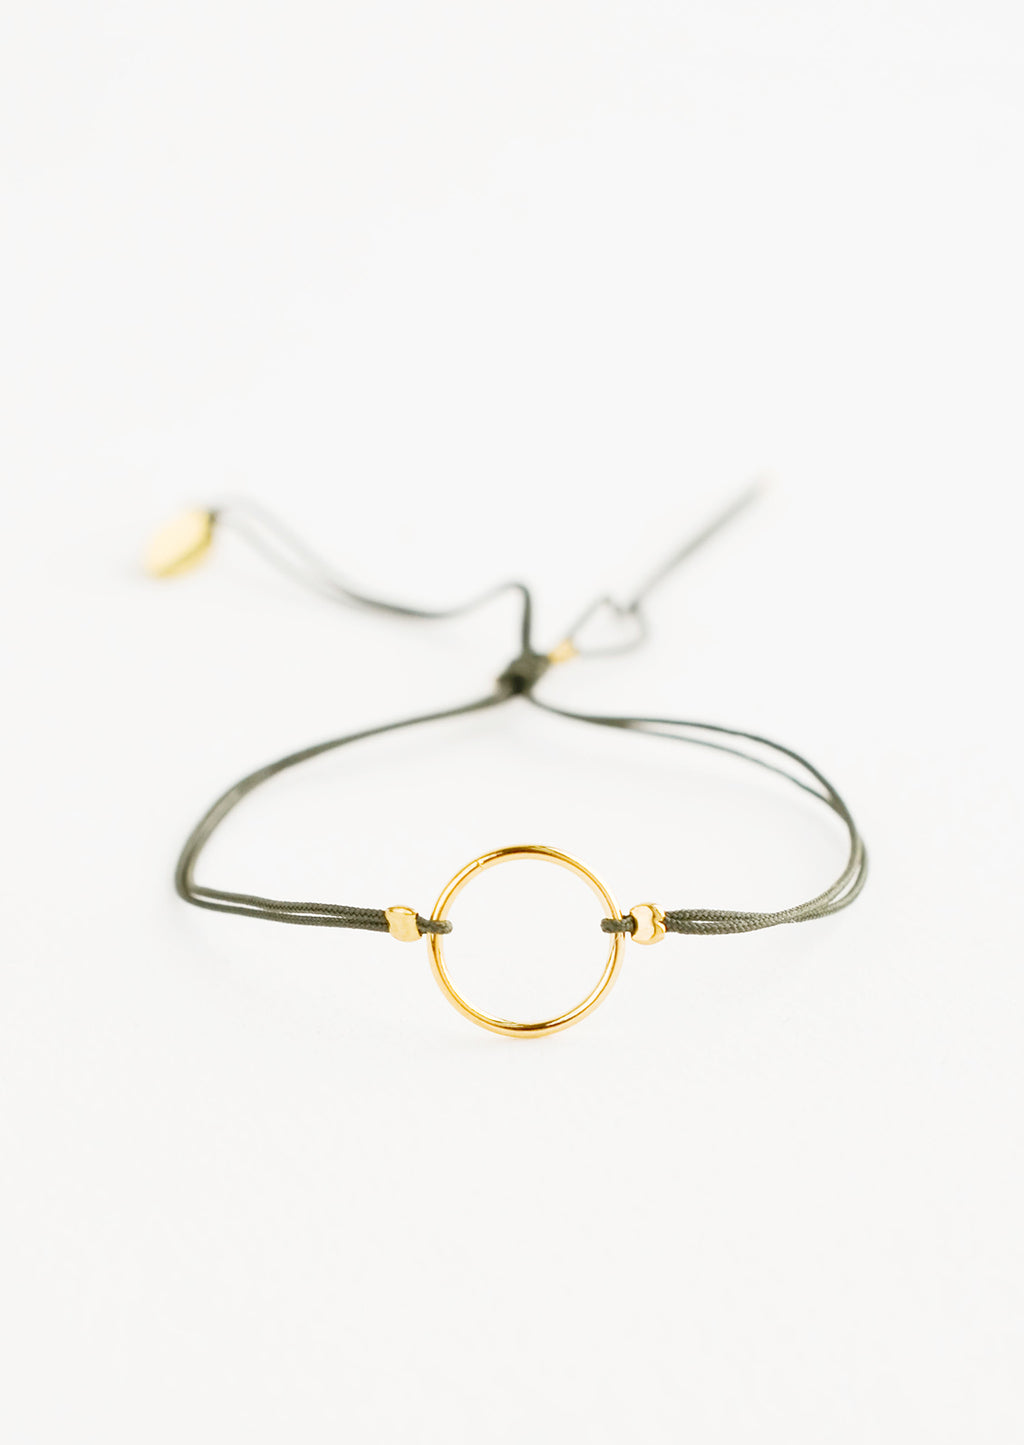 Khaki: Bracelet with yellow gold circle charm centered on an adjustable green string.